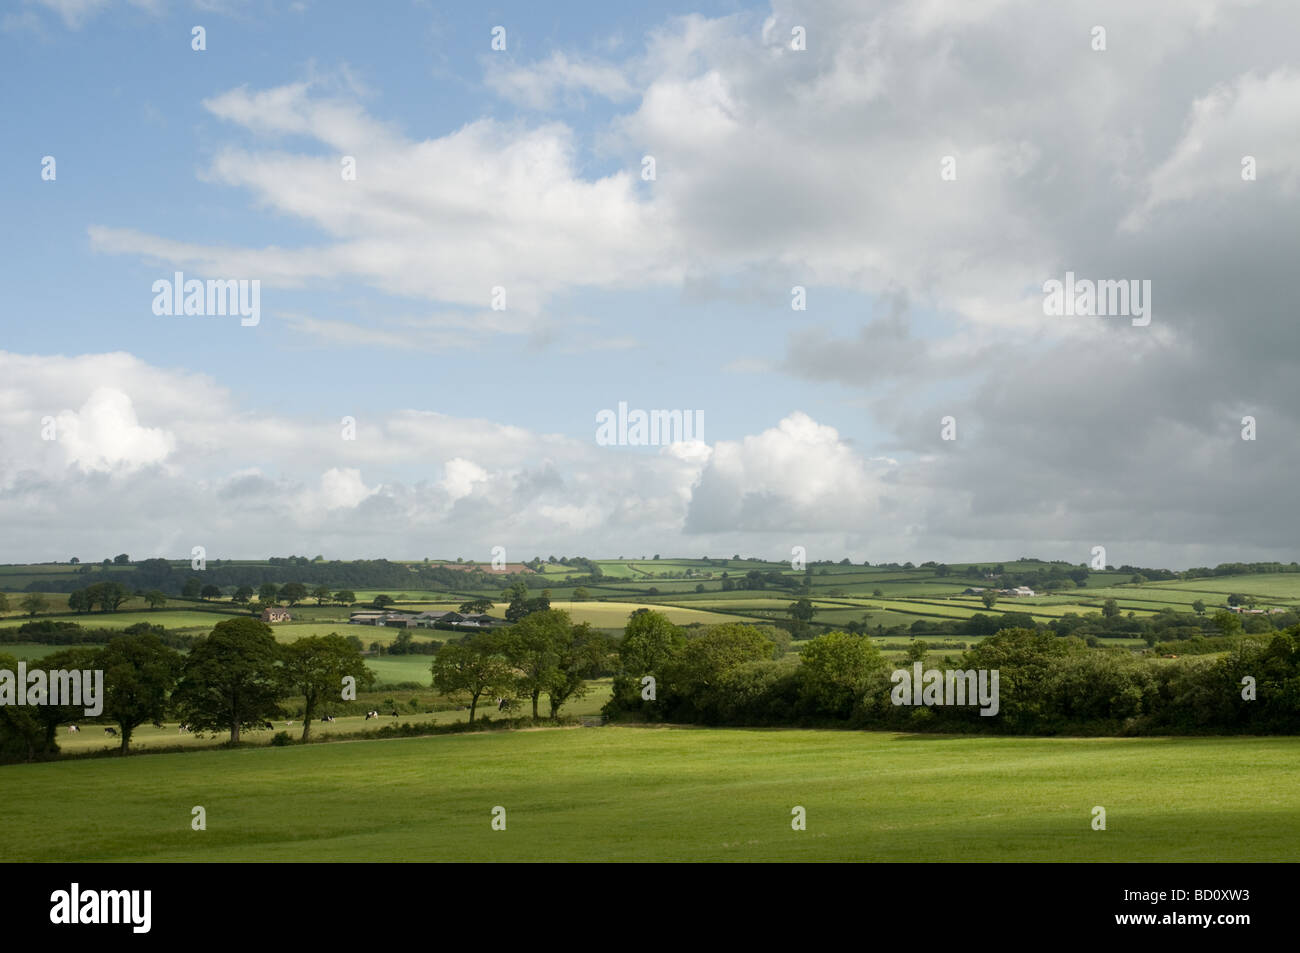 View of lush green fields at St.Clears Carmarthenshire with a blue sky and clouds - Stock Image